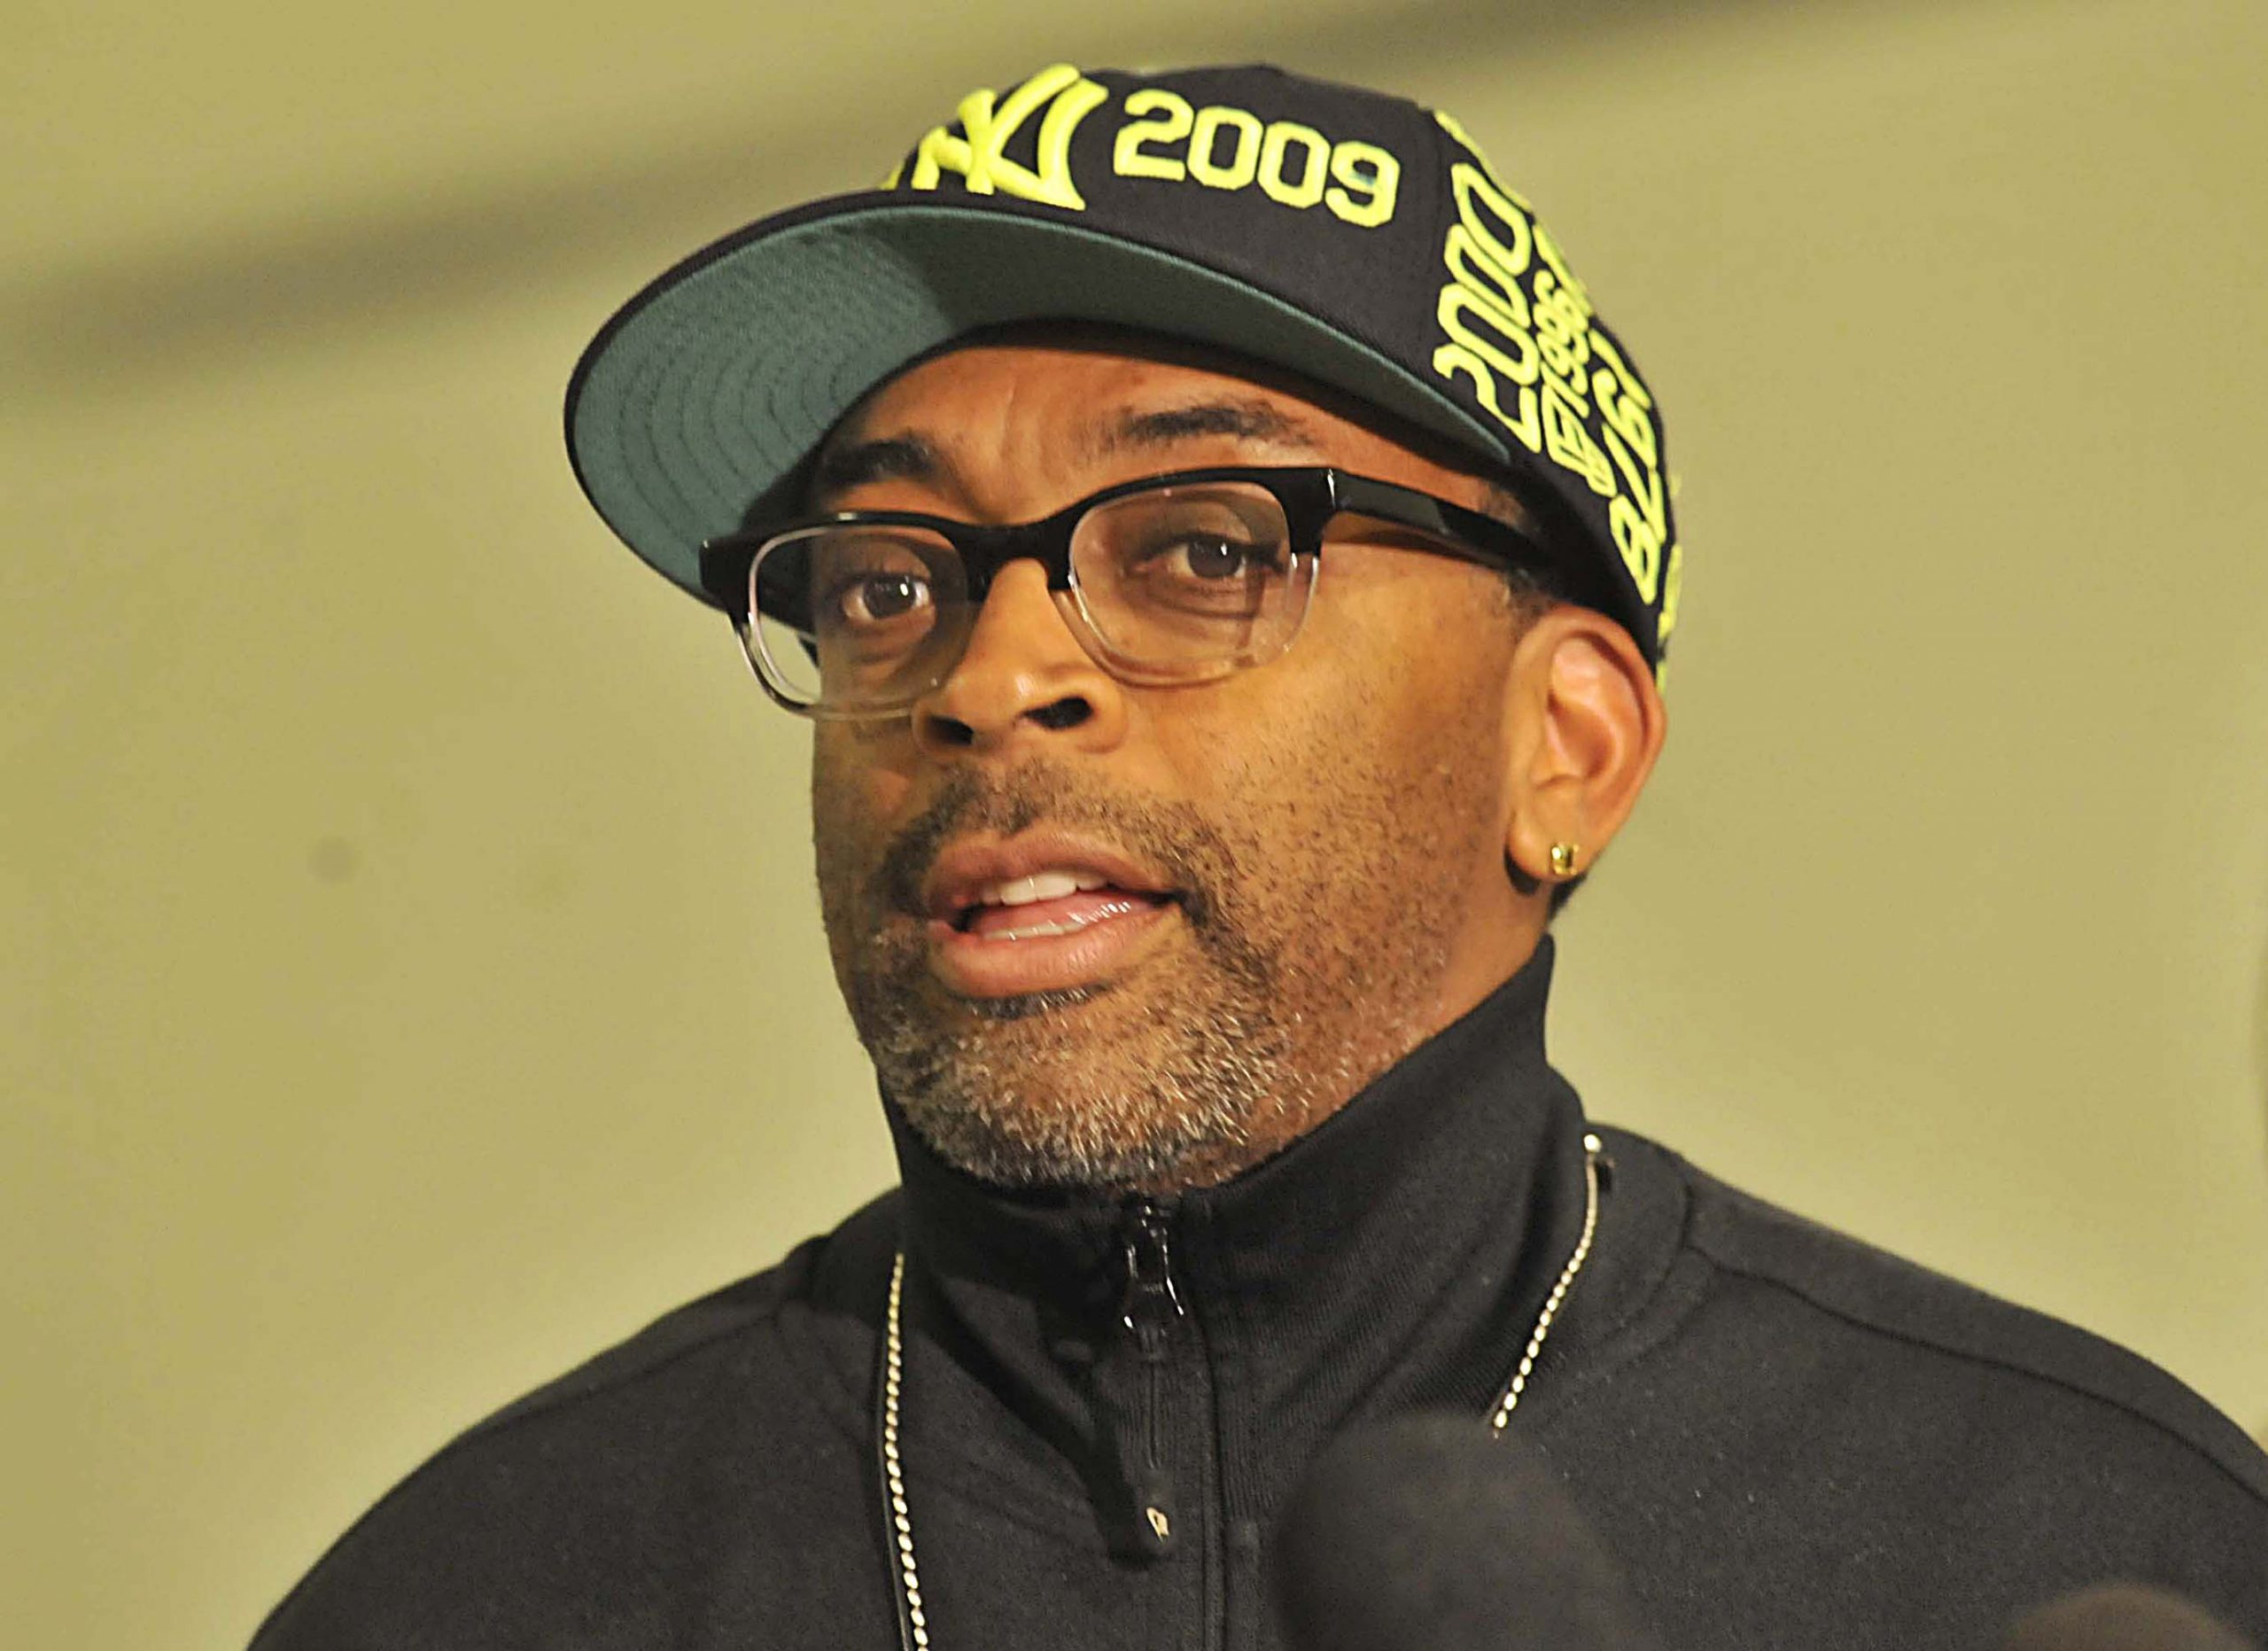 Spike Lee, John Legend and Other Celebrities Condemn Trump Amid George Floyd Protests